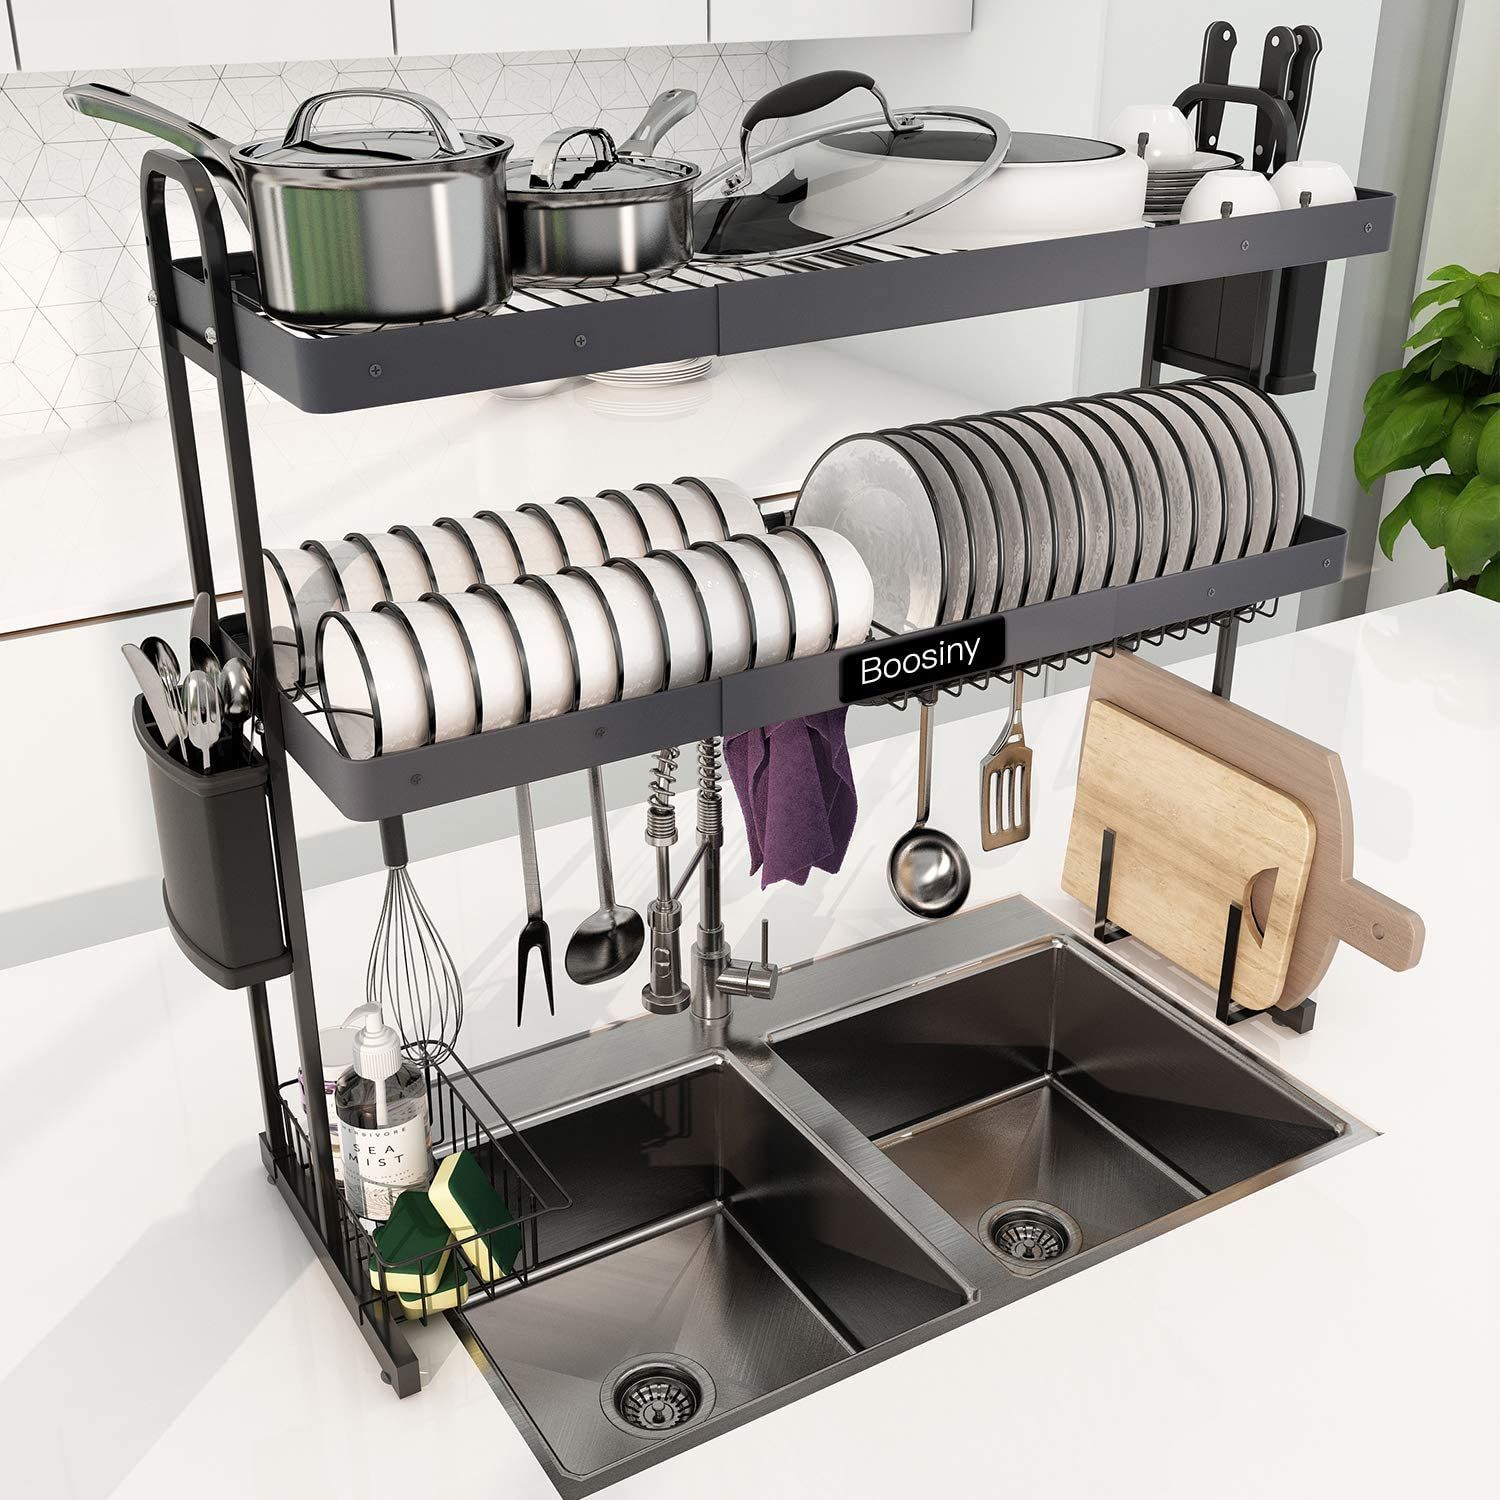 over sink dish drying rack boosiny 2 tier stainless steel expandable kitchen dish rack 27 5 33 5 adjustable large dish drainer shelf with